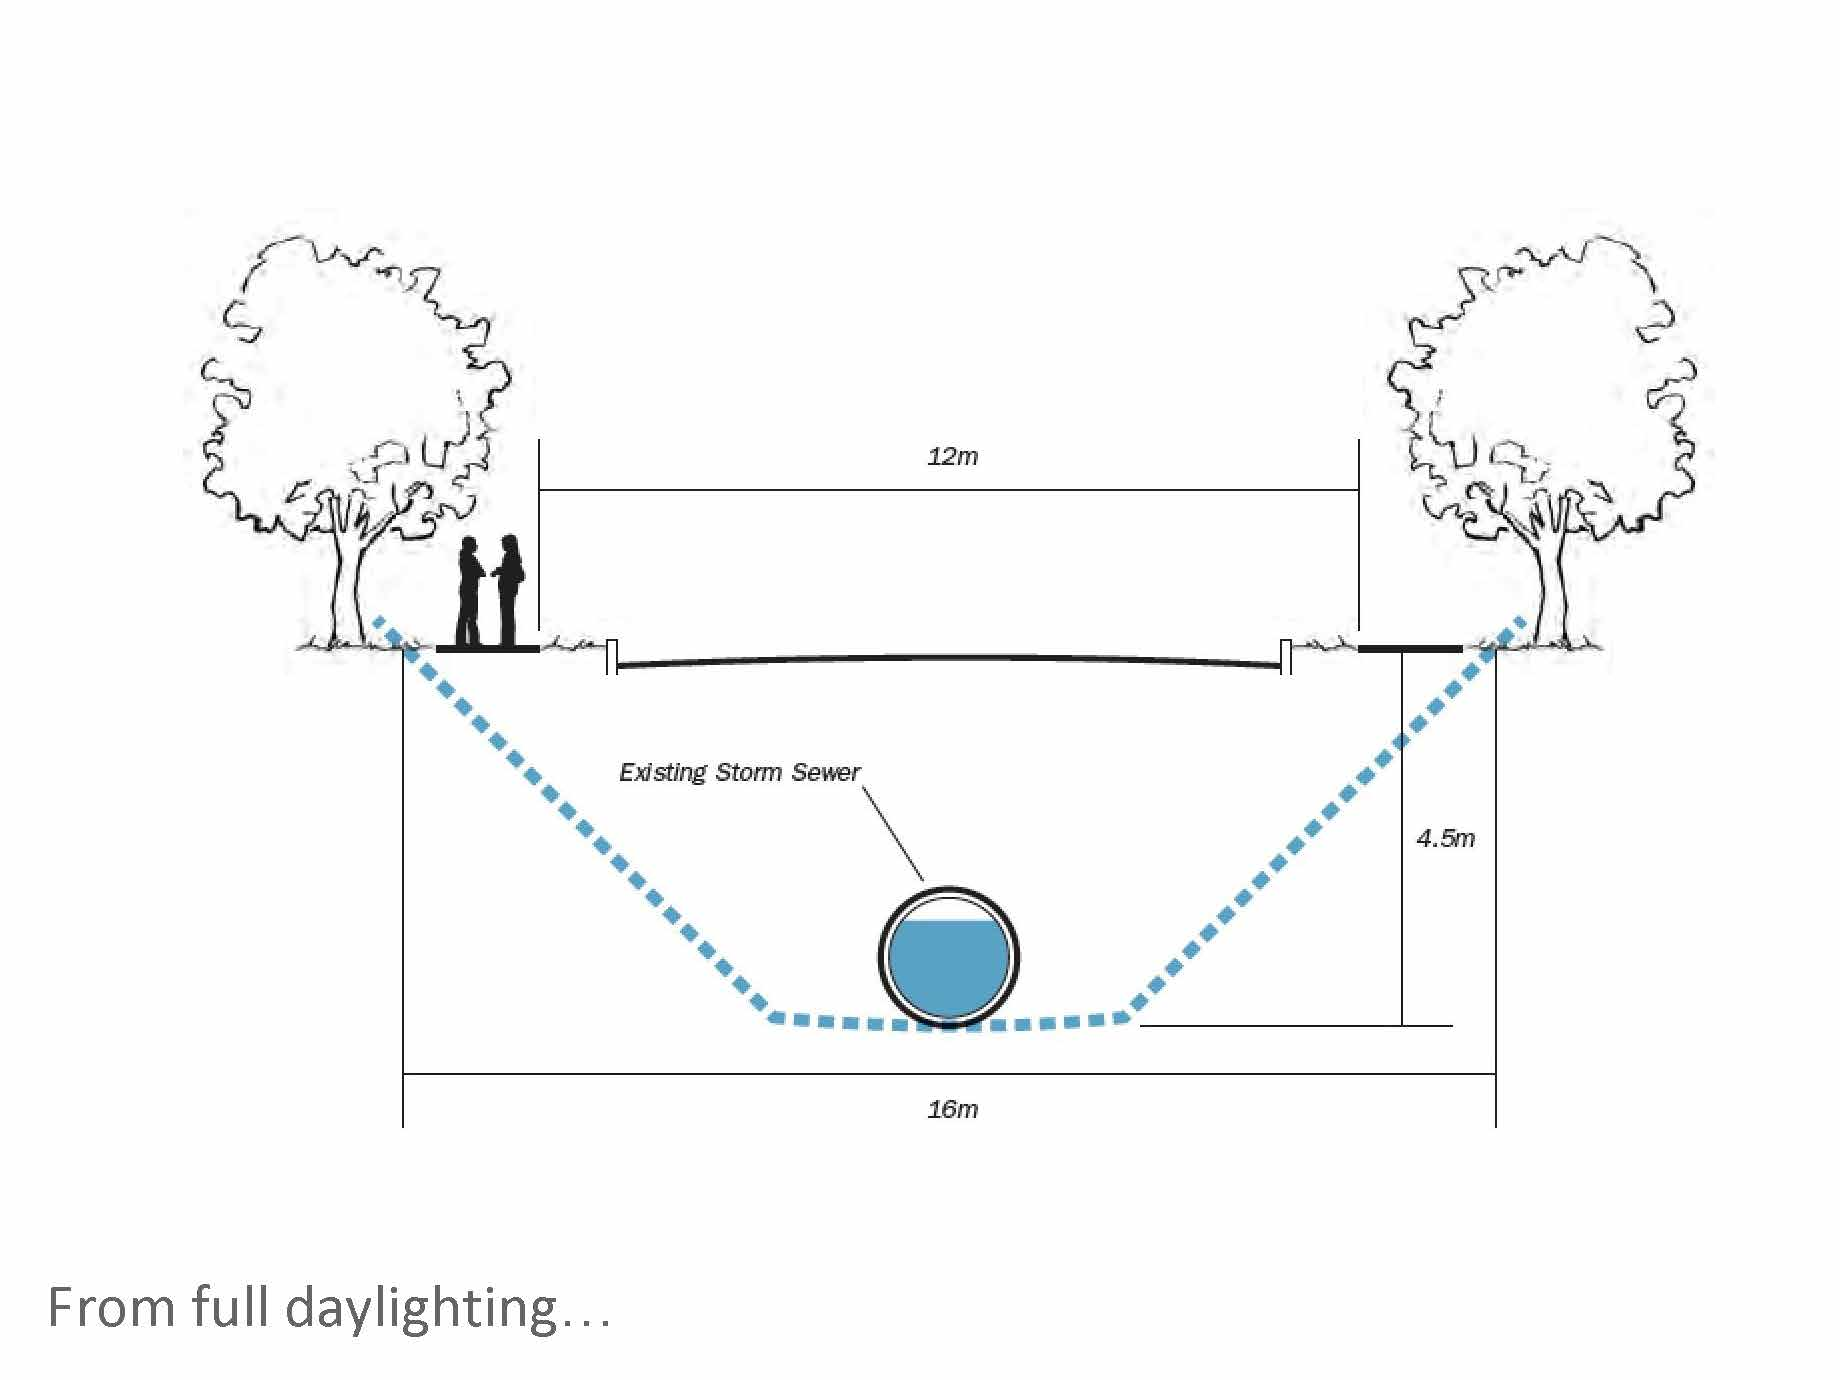 As our group explored what daylighting involved, we began to realize that full daylighting, which implied accessing and uncovering the original stream, was unrealistic given the constraints of a city street.